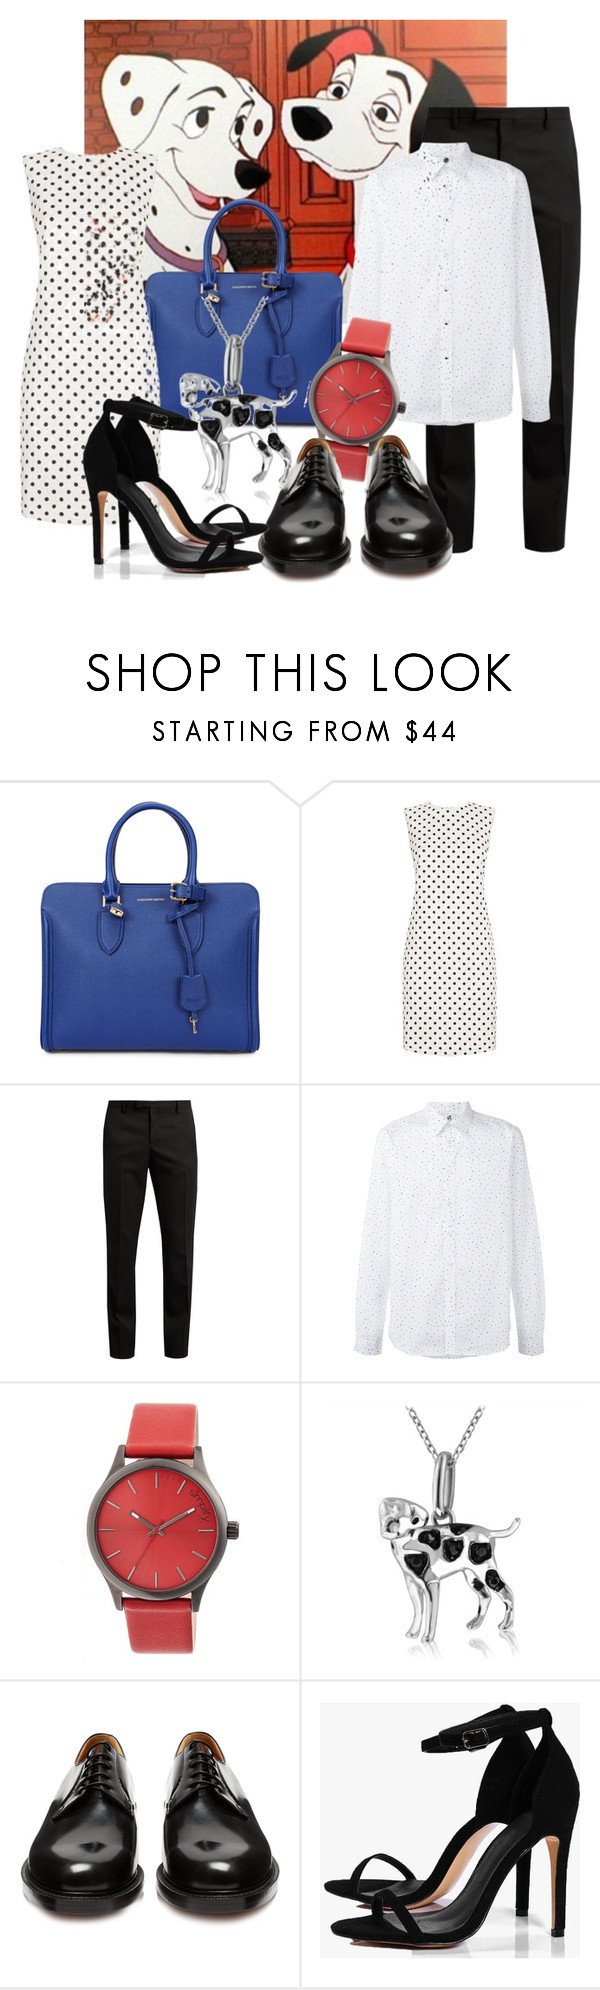 """Perdita and pongo"" by dressing-like-disney ❤ liked on Polyvore featuring Alexander McQueen, Dolce&Gabbana, Yves Saint Laurent, PS Paul Smith, Simplify, ASPCA, Vetements and Boohoo"